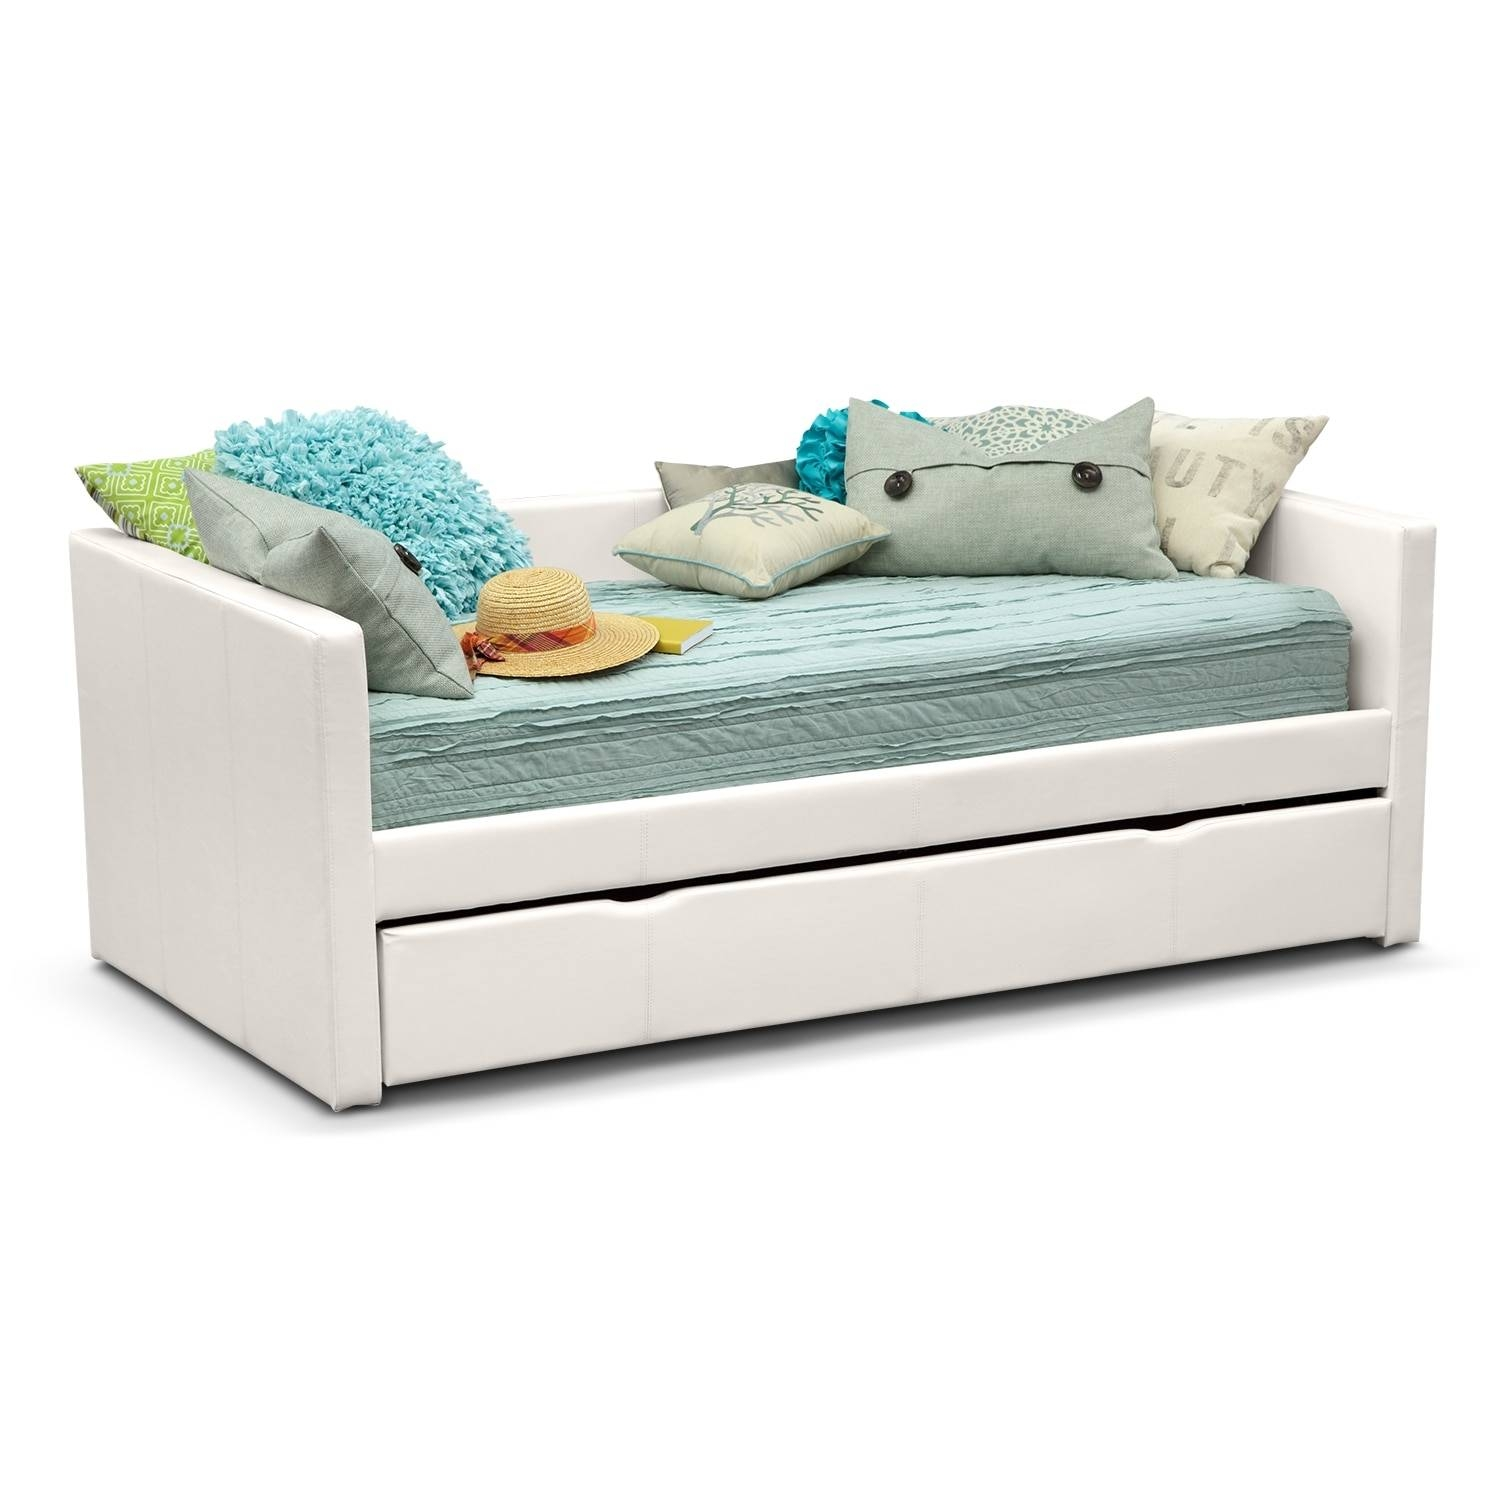 Daybeds & Trundle Beds | Bedroom Furniture | American Signature In Sofas Daybed With Trundle (View 1 of 15)